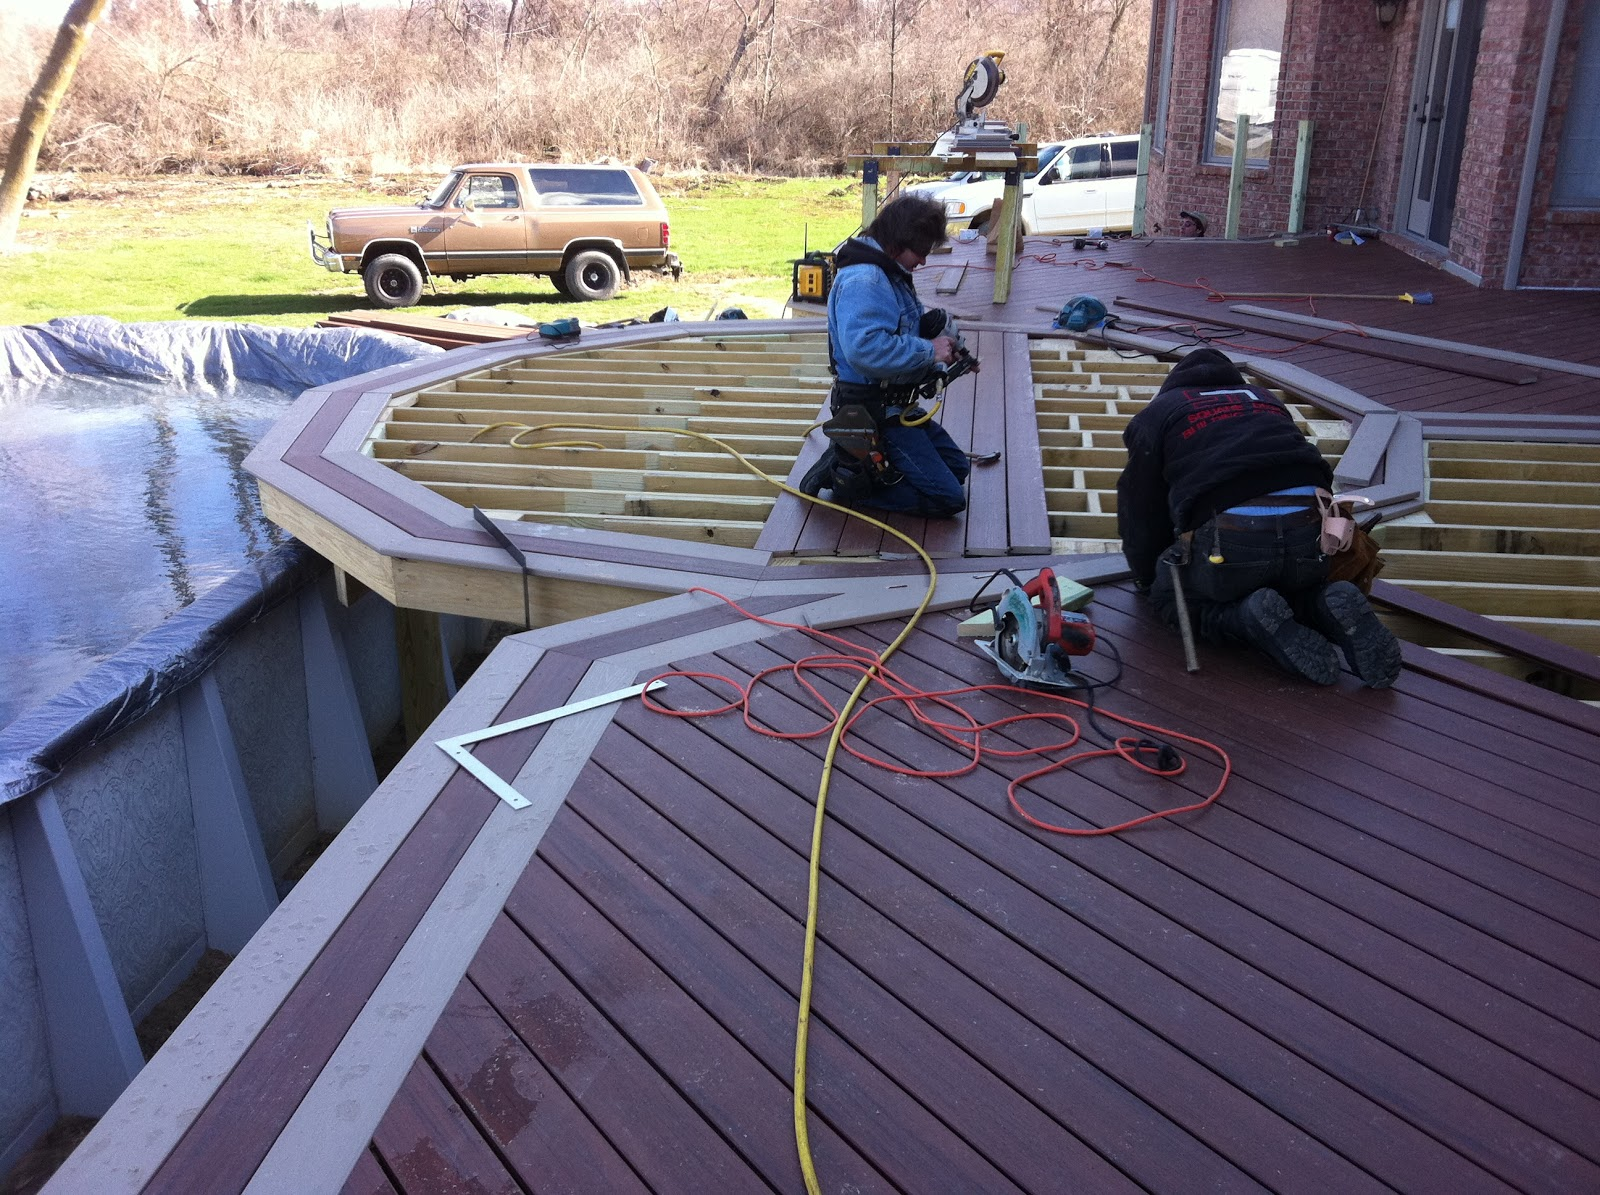 How to Build A Trex Deck | Installing Composite Decking | Trex Decking Specs